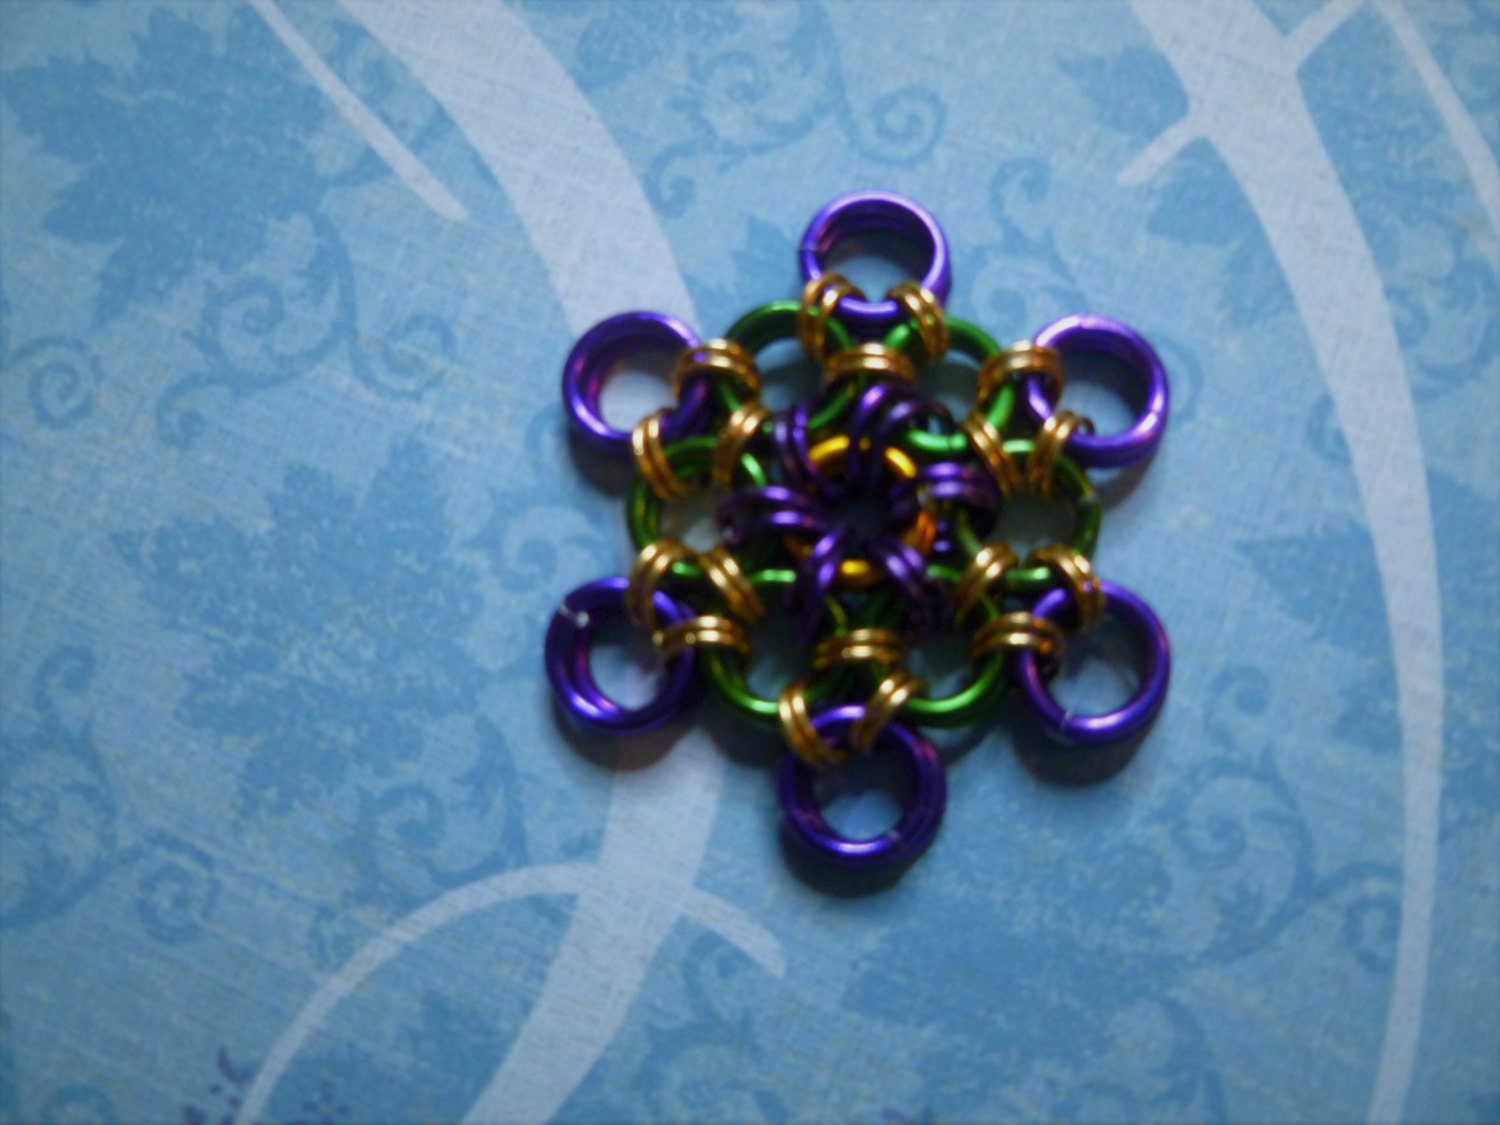 Chainmail Snowflakes Super Hero Inspired Christmas Ornaments Made To Order Buy 1 for 8.00, 2 for 16.00, and Various Sets Also Available